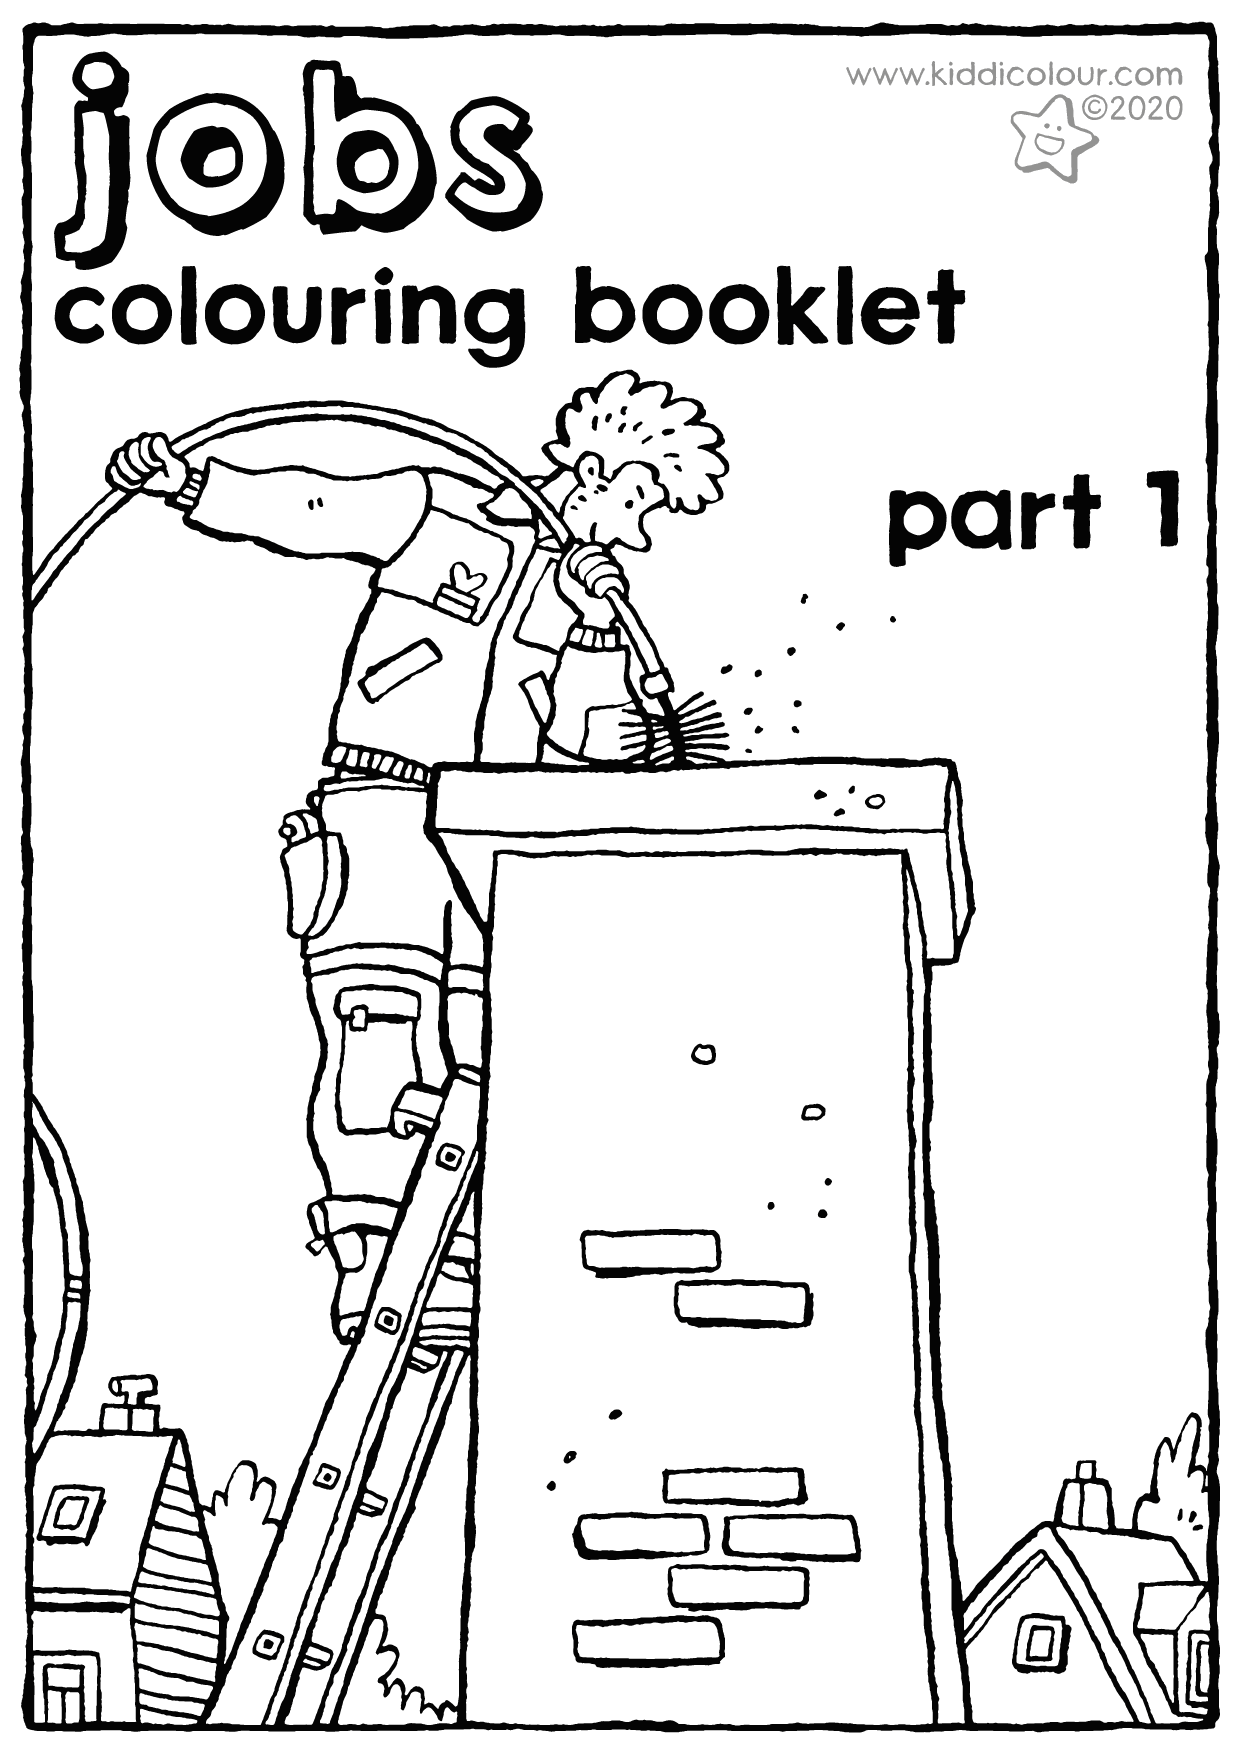 jobs colouring booklet part 1